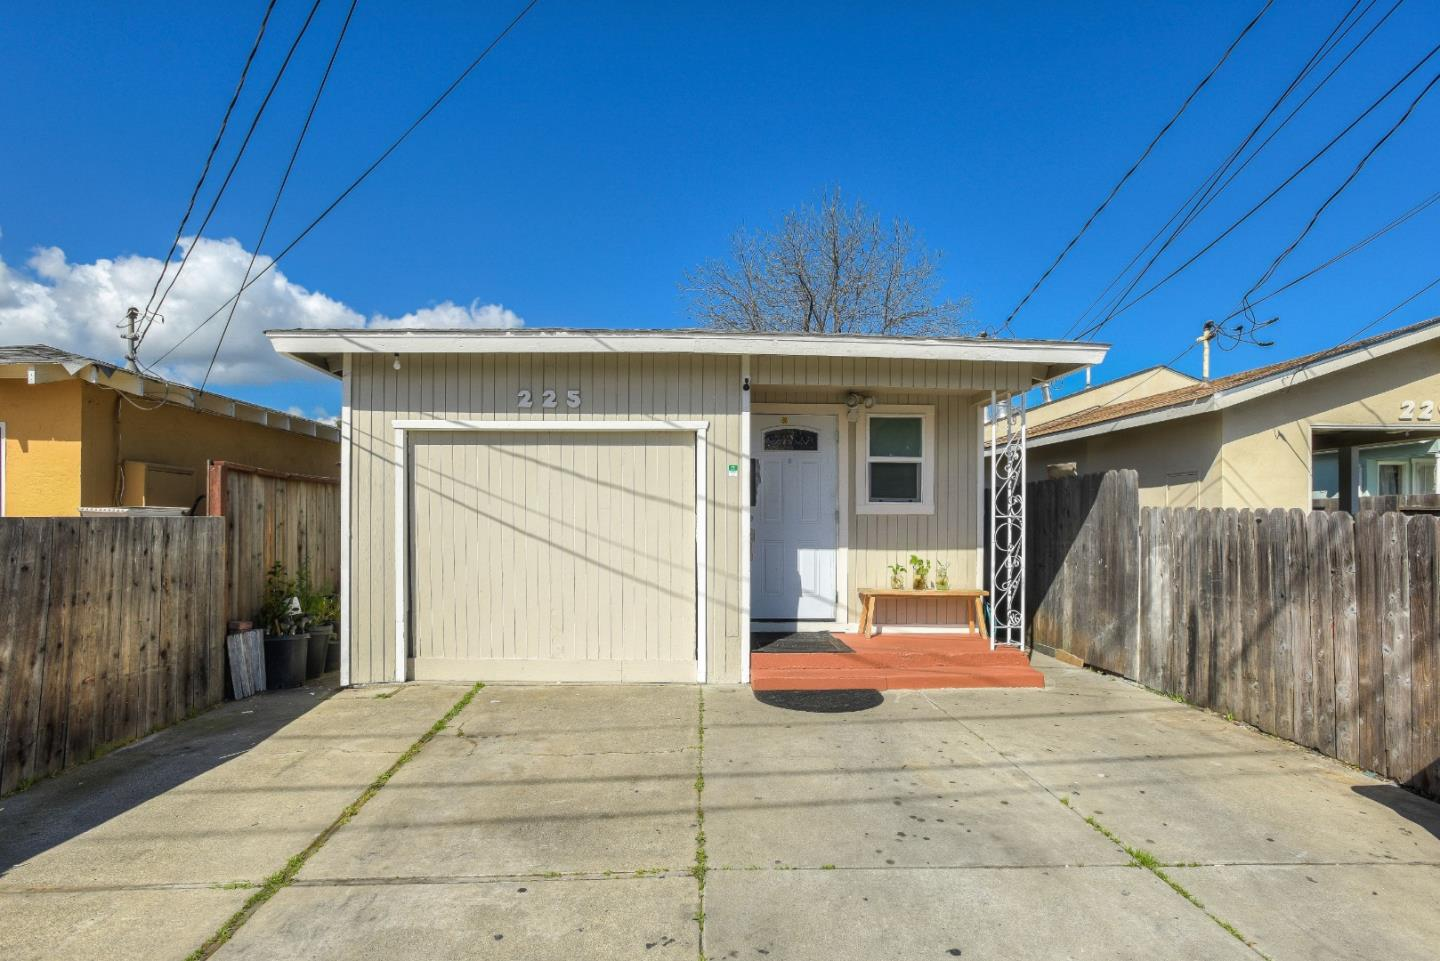 225 PACIFIC AVE, REDWOOD CITY, CA 94063